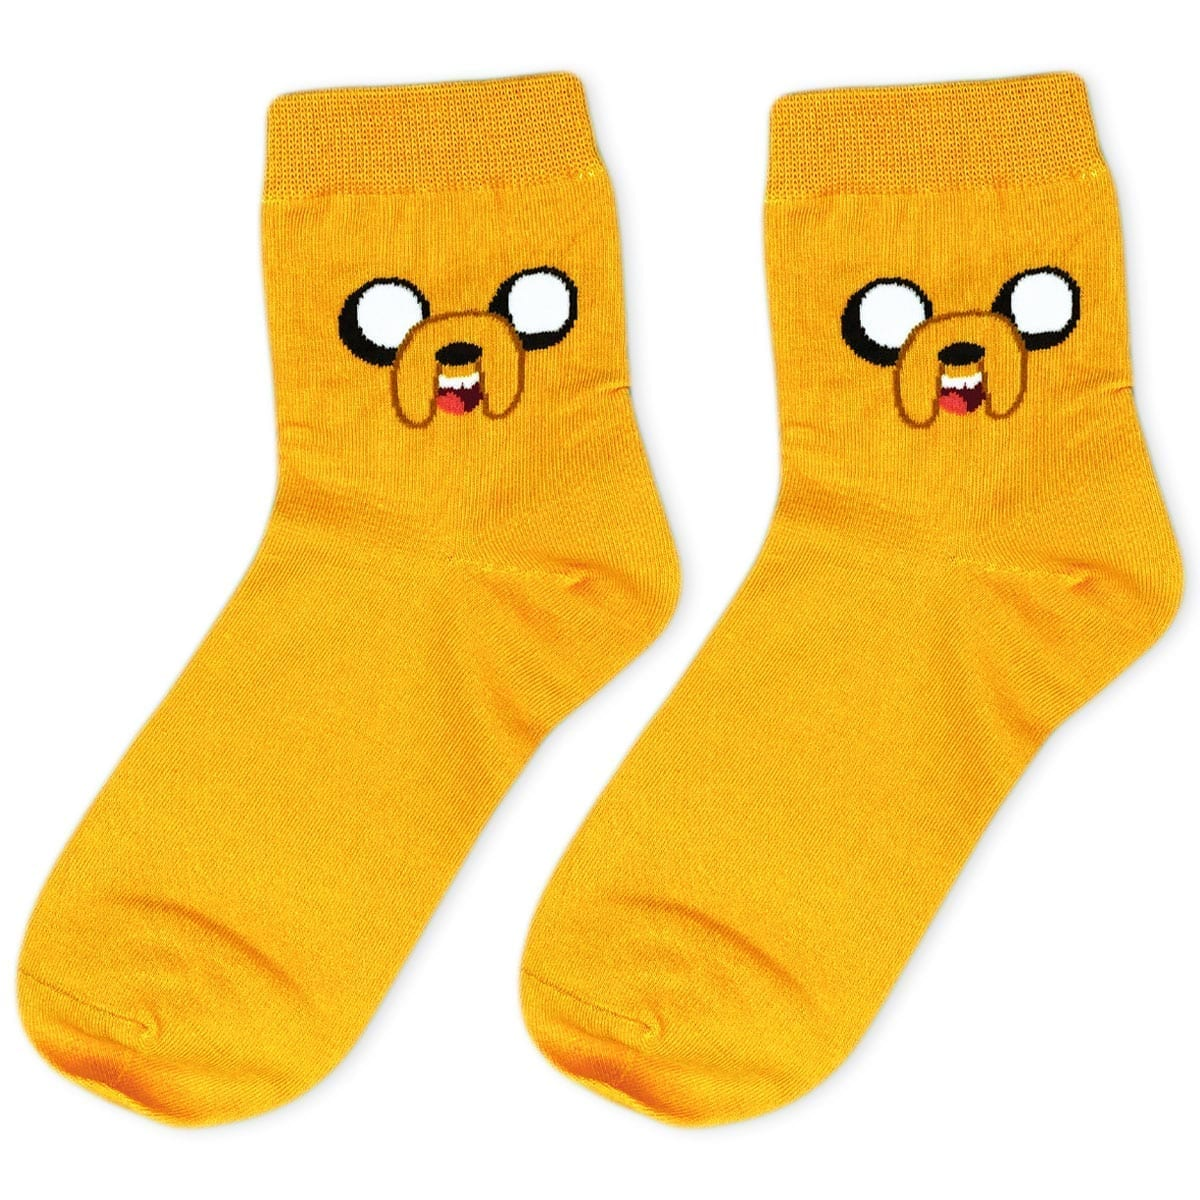 pair of orange socks with jake the dog